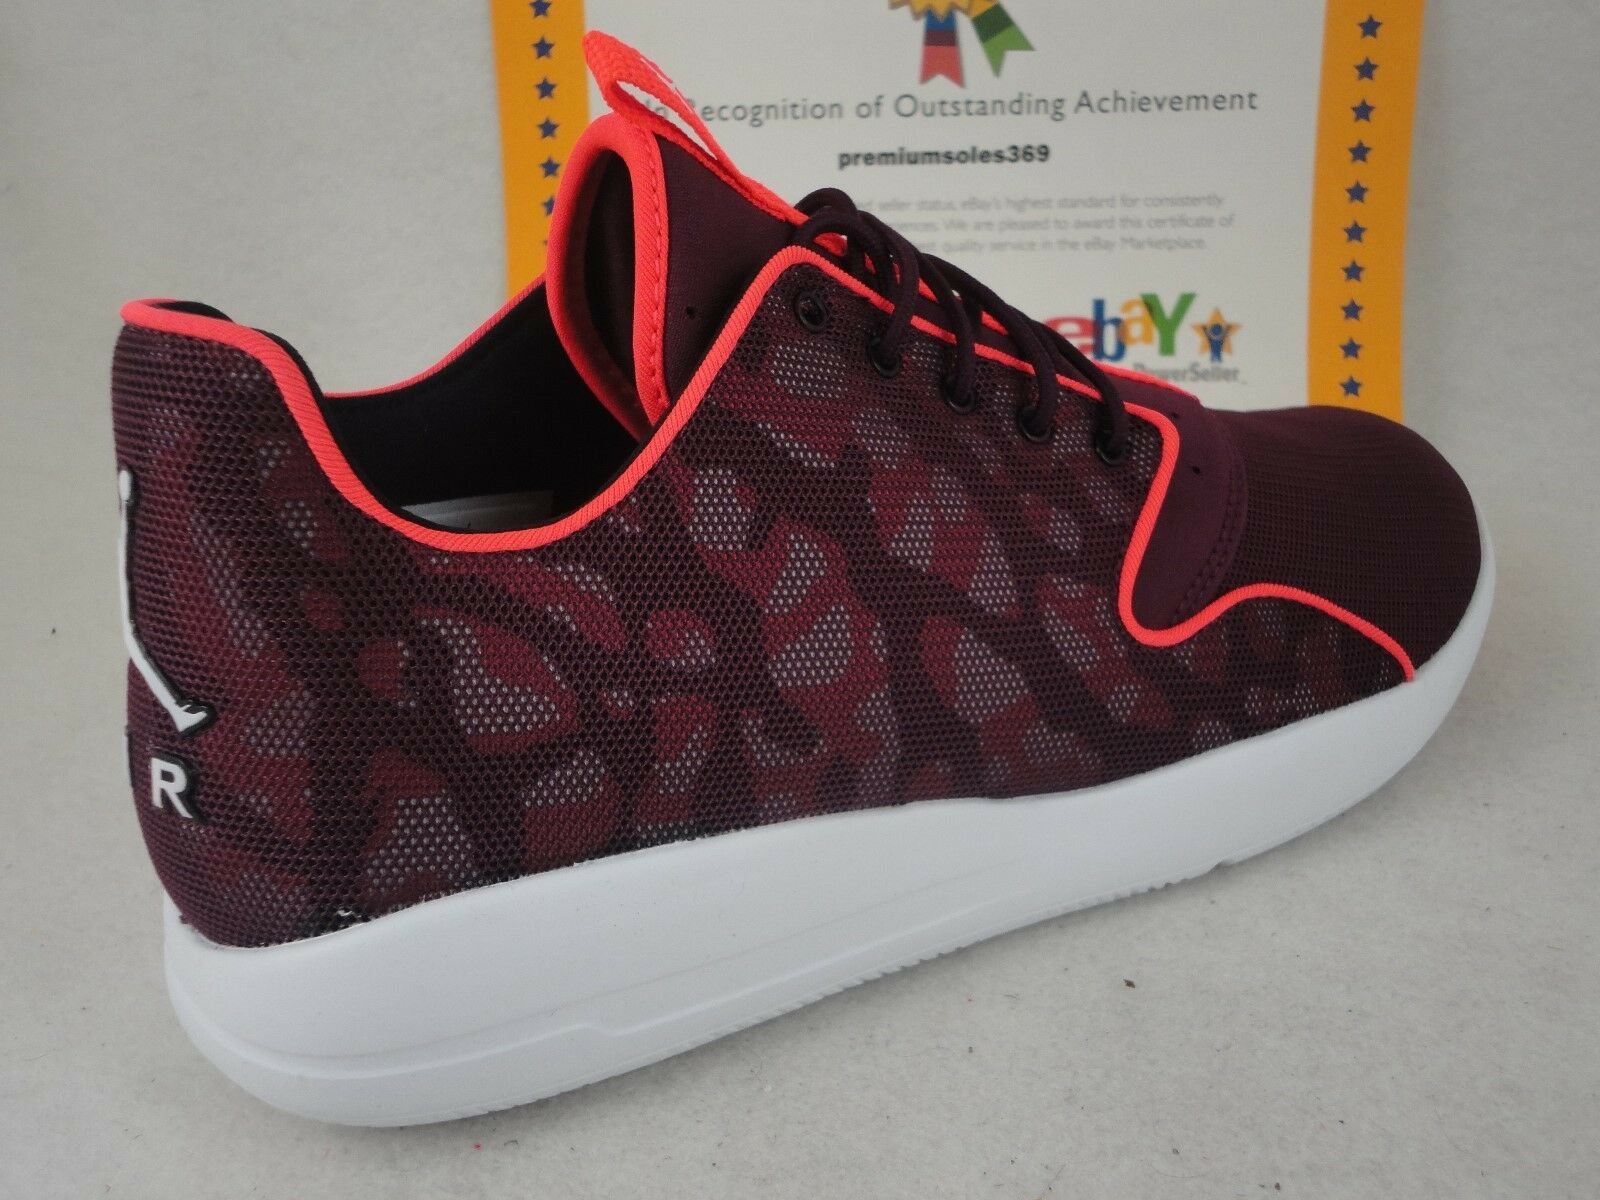 Nike Jordan Eclipse, Bordeaux   White   Infrared 23, Size 13